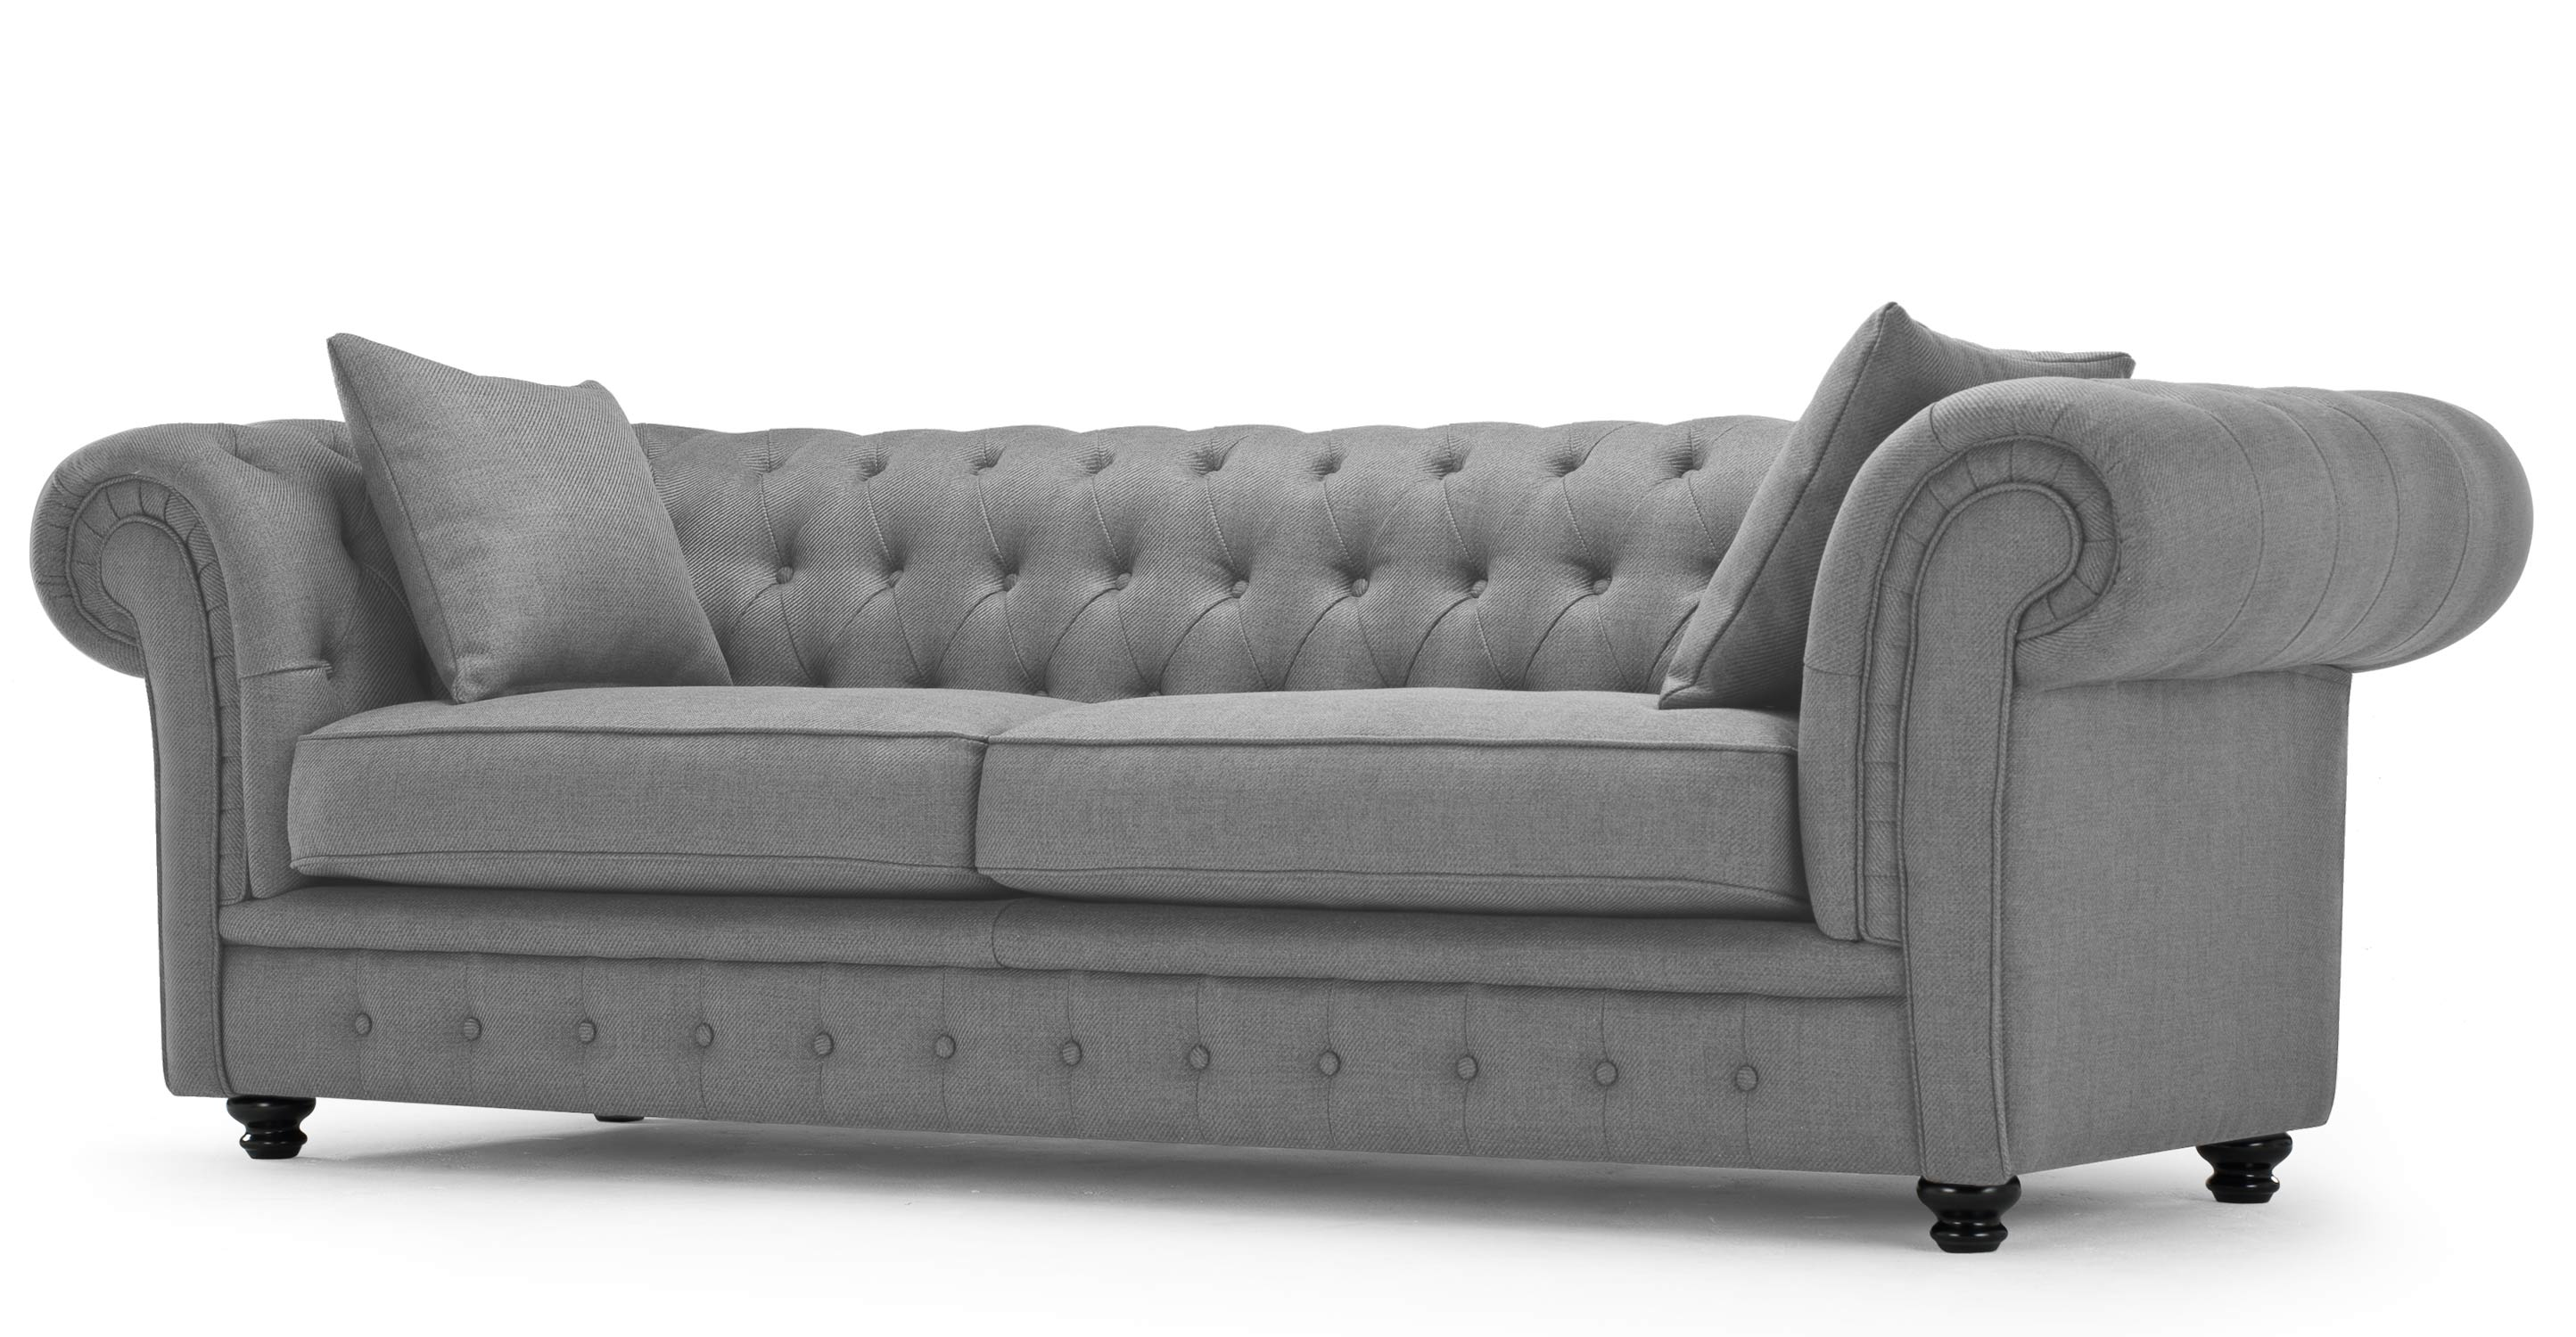 Branagh 3 Seater Grey Chesterfield Sofa Madecom